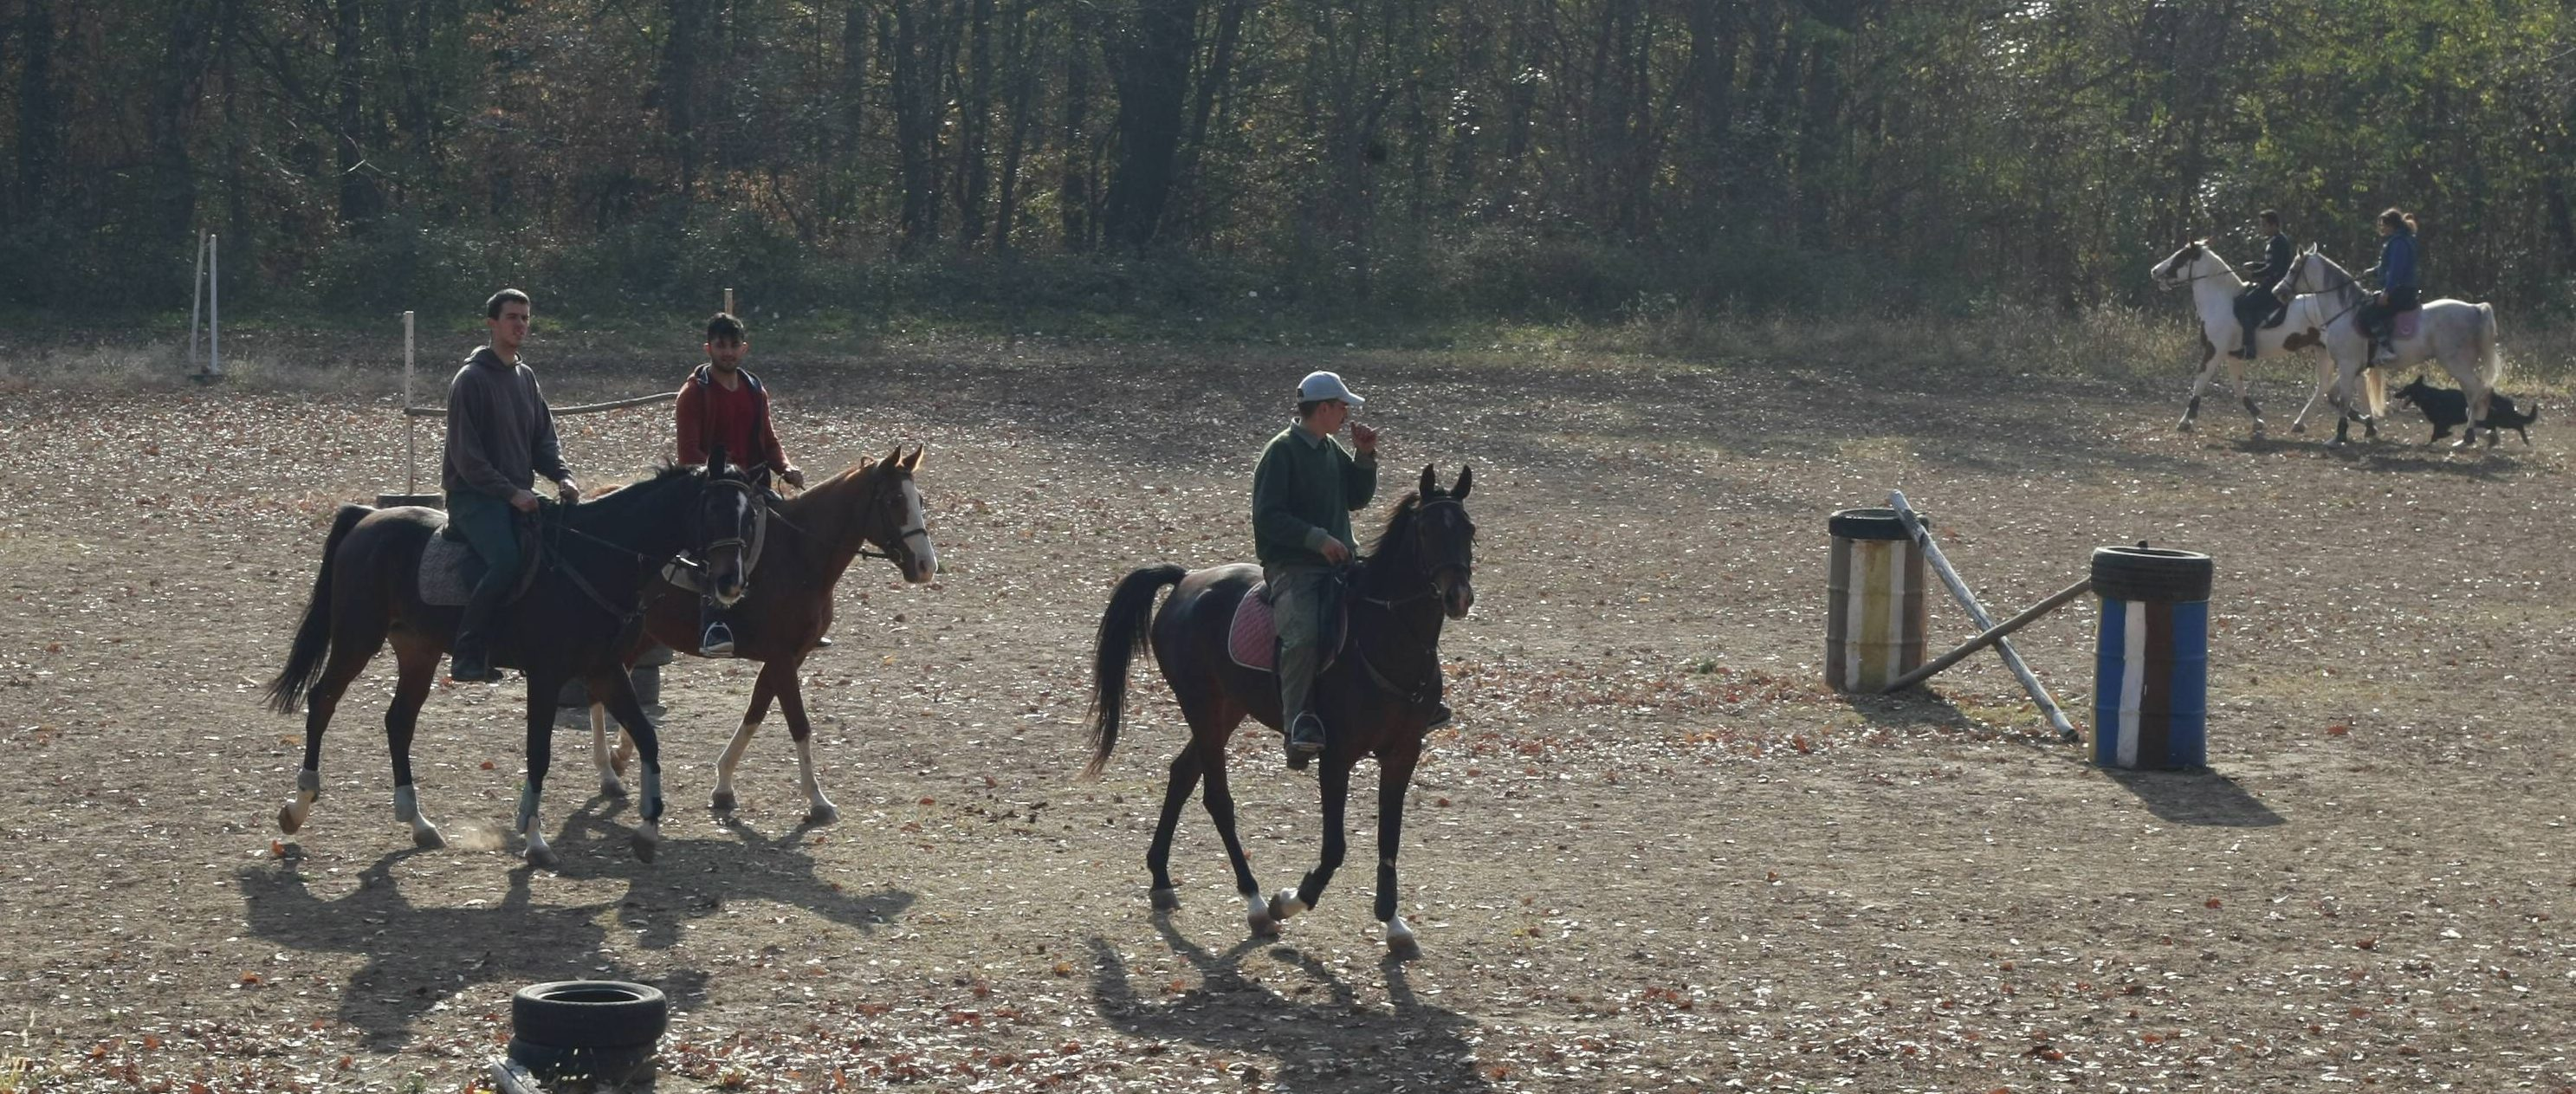 Migrants from the Reception Centre in Obrenovac visited the Equestrian Centre MBM in Lipovica